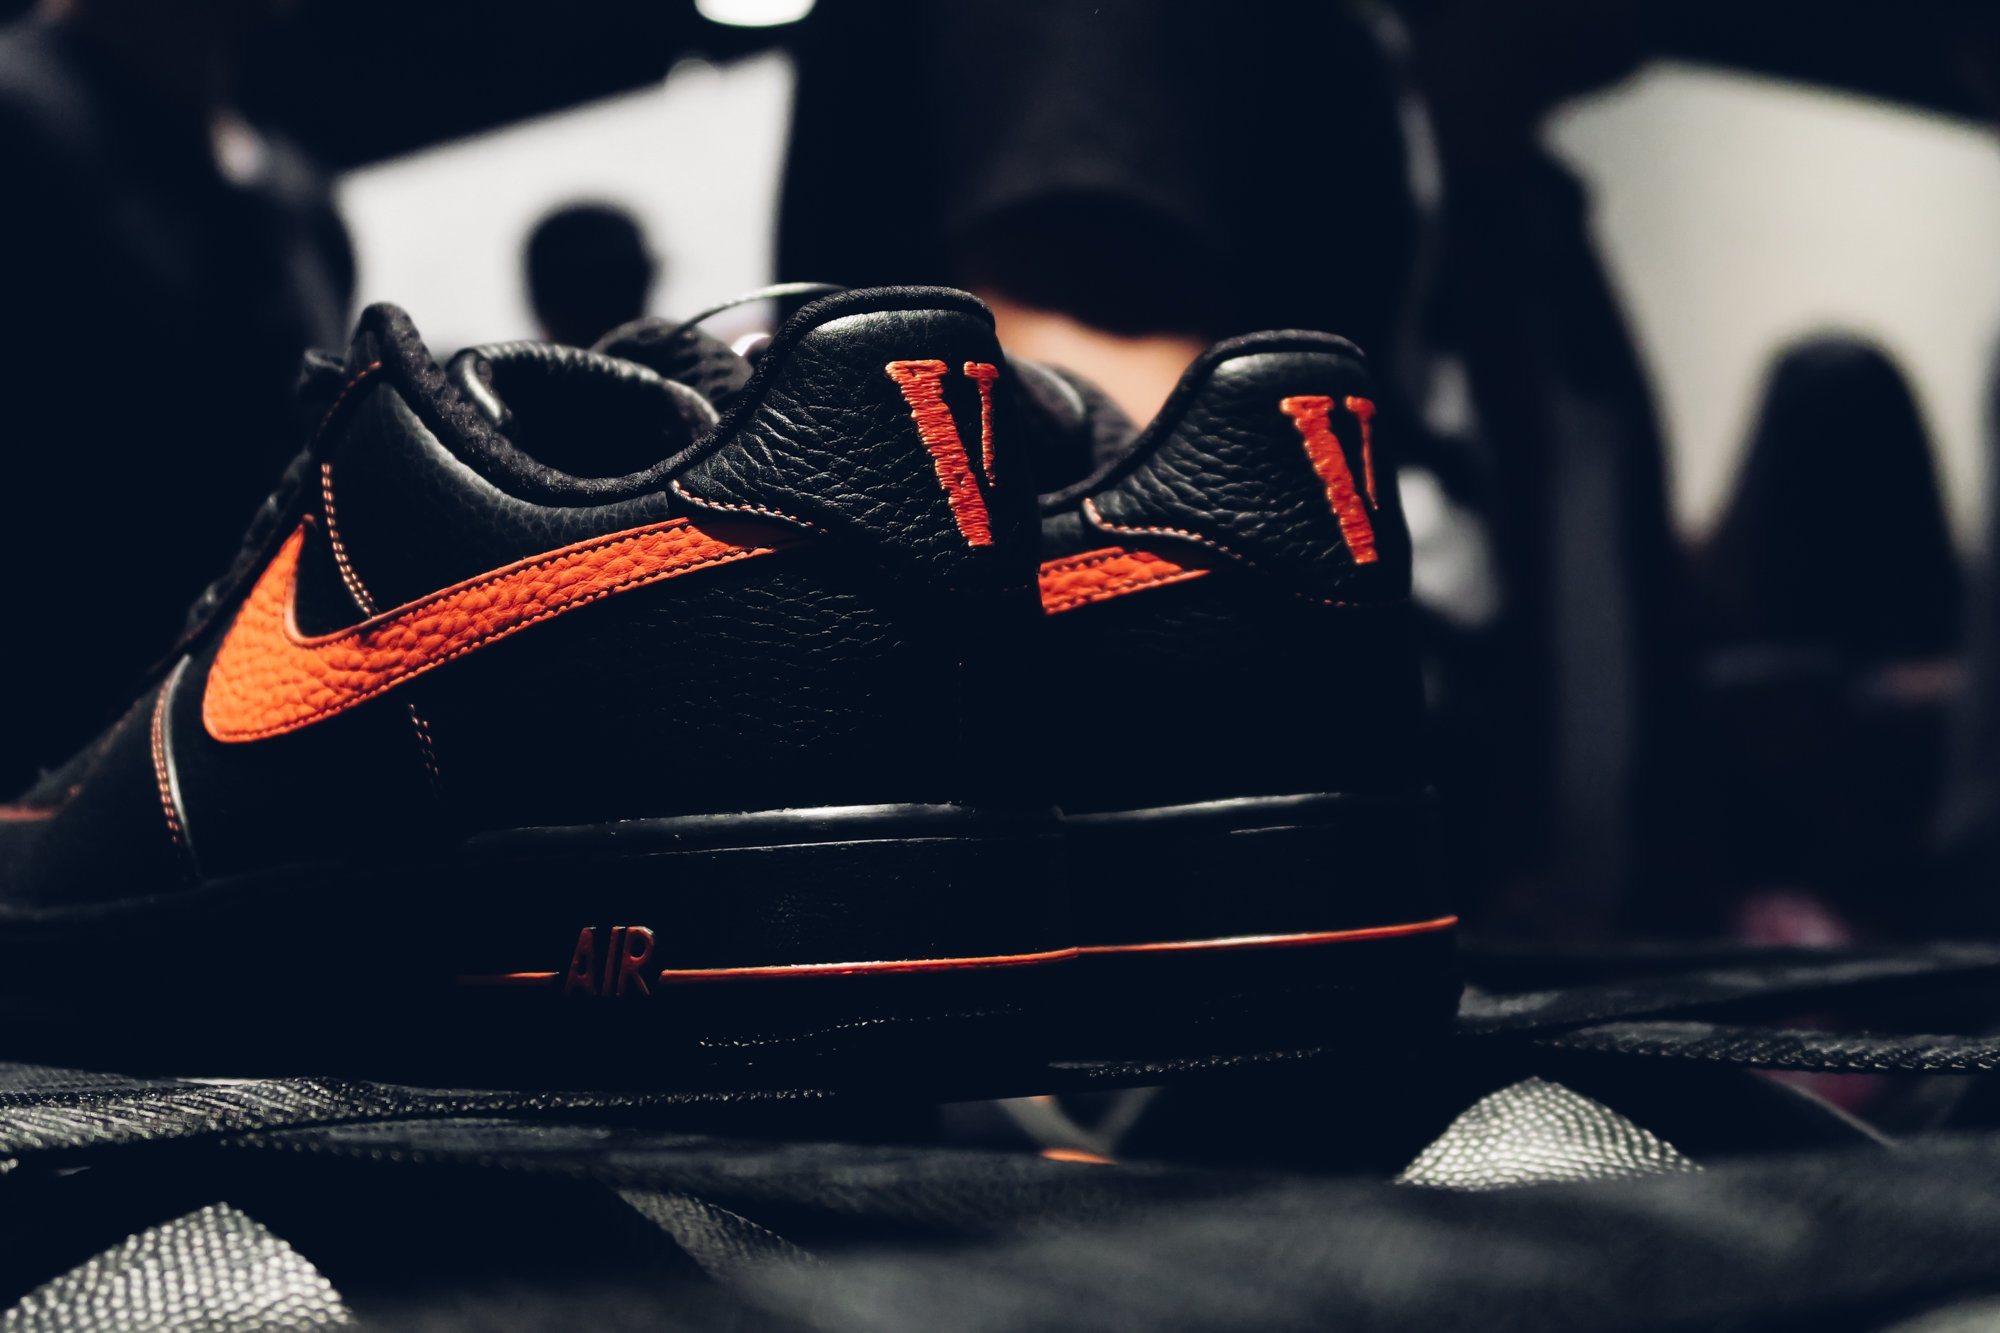 vlone-nike-lab-air-force-1-release-coming-soon-15